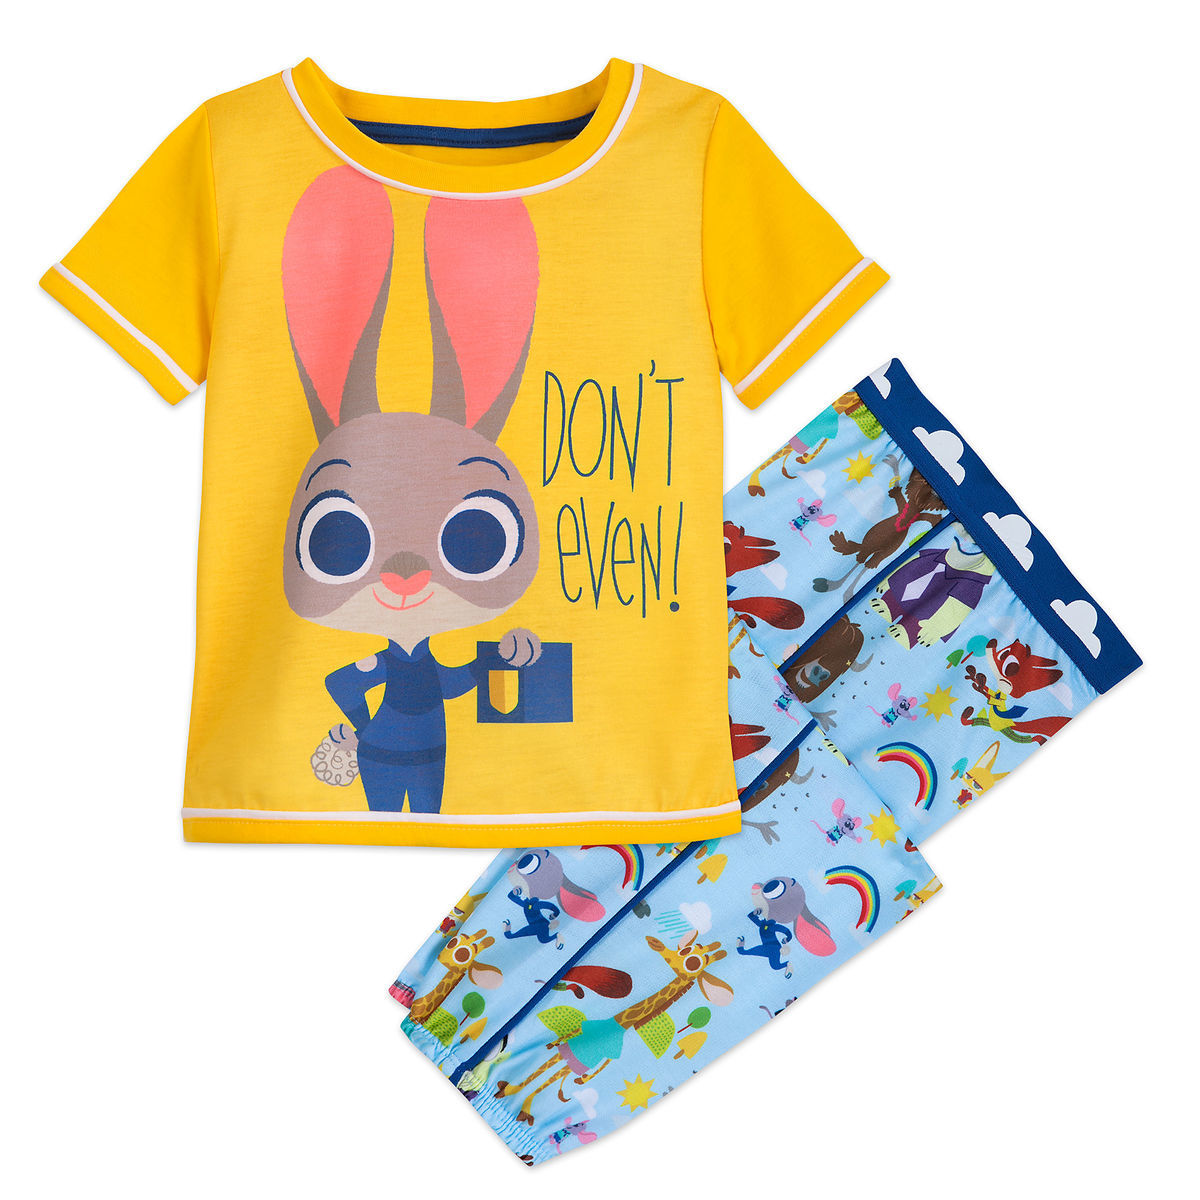 2f9e58ee67 Product Image of Judy Hopps PJ Set for Girls - Zootopia   1